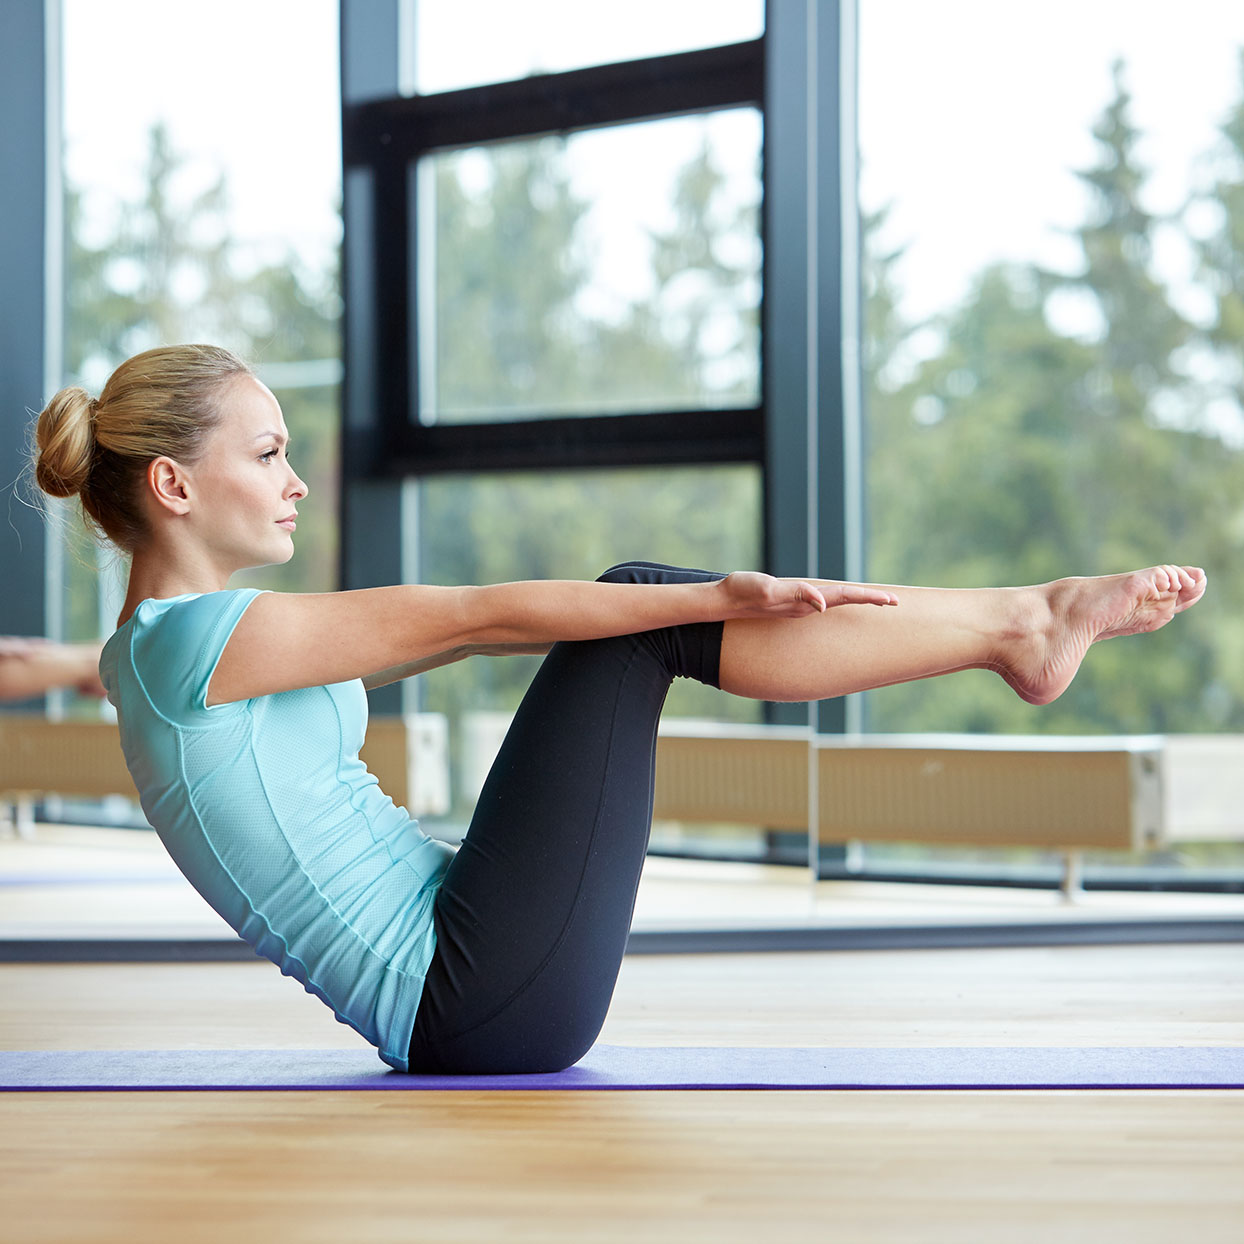 A woman holds a boat pose and focuses